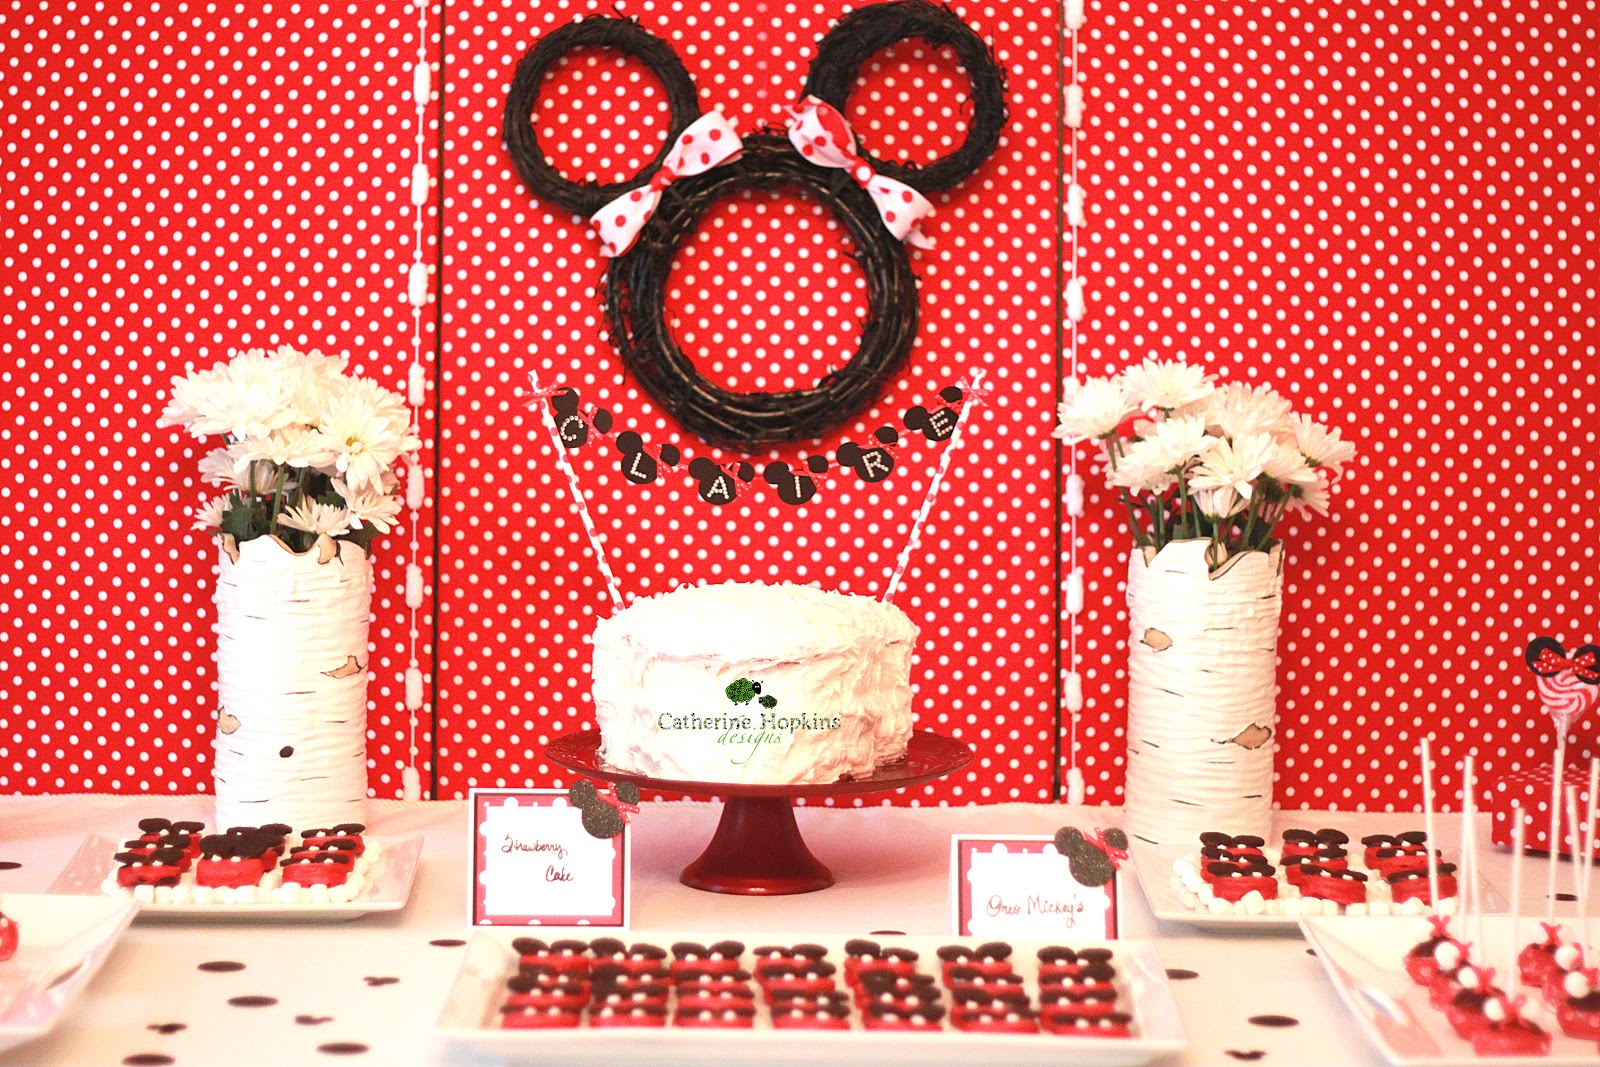 I Had The Opportunity To Style And Plan A Minnie Mouse Inspired Birthday Party For Two Year Old Adorable Little Girl This Was Rushed Event